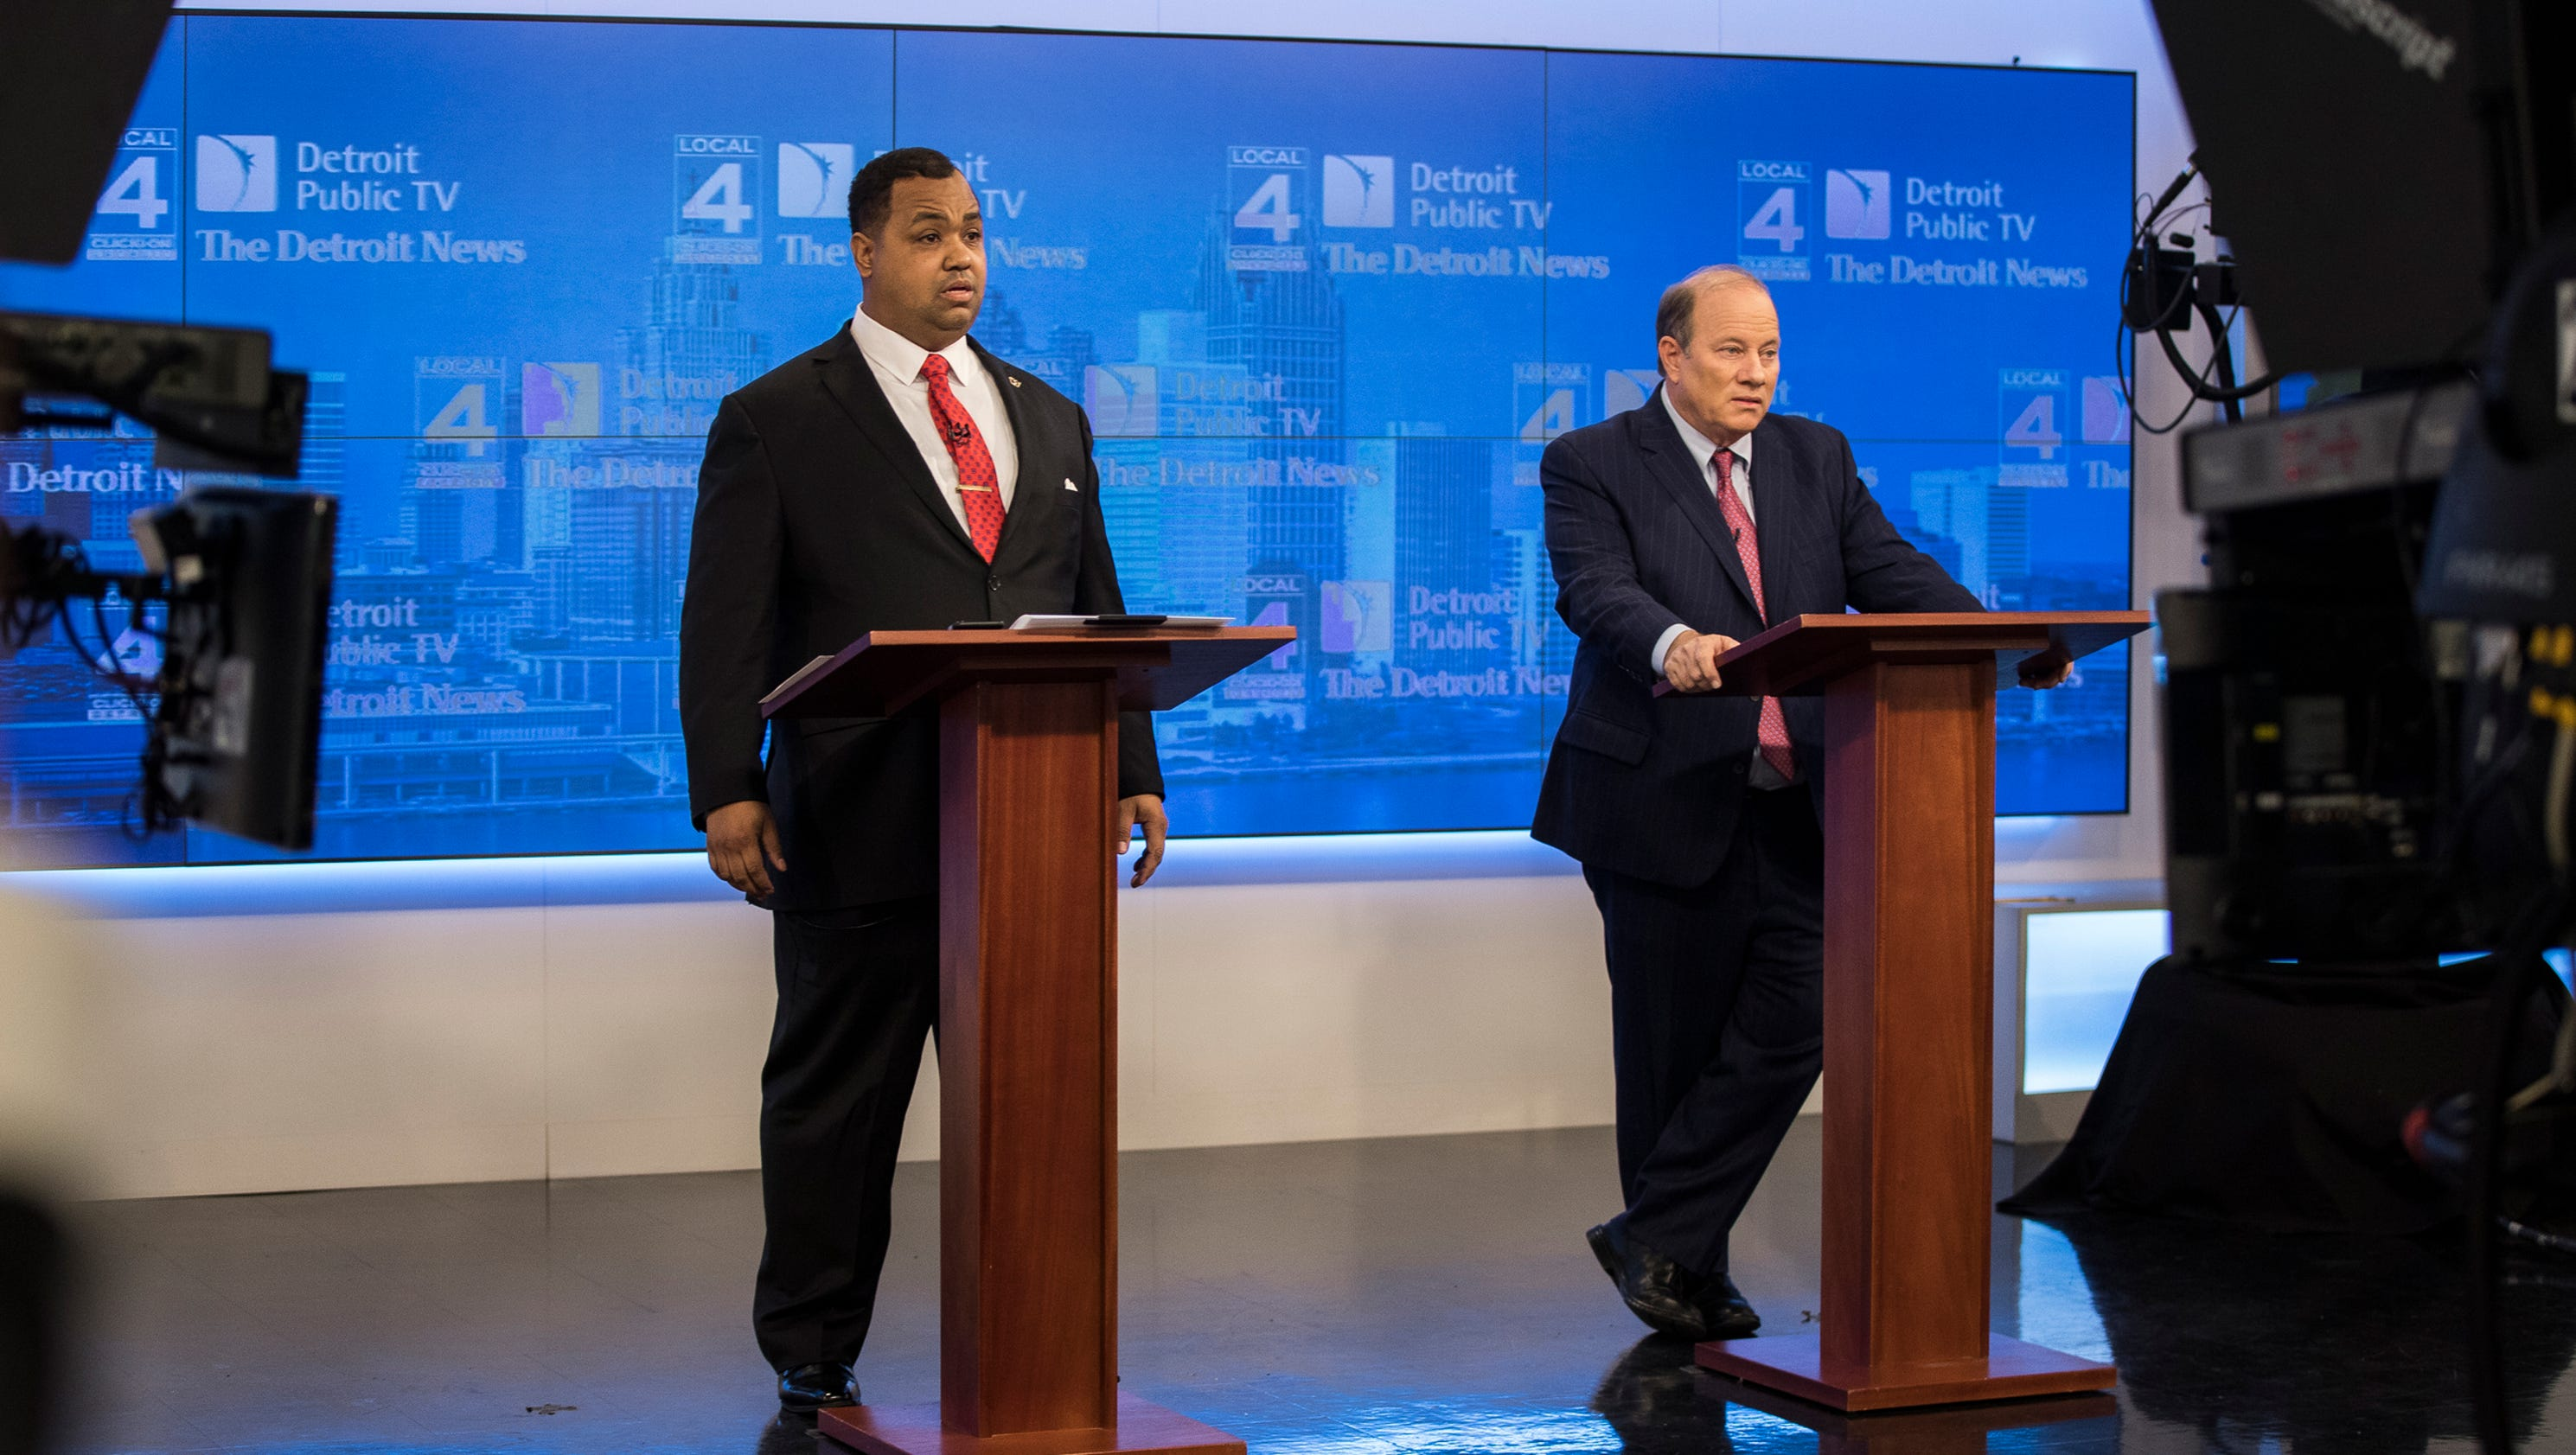 Detroit mayor debate fact check: Mike Duggan and Coleman ...